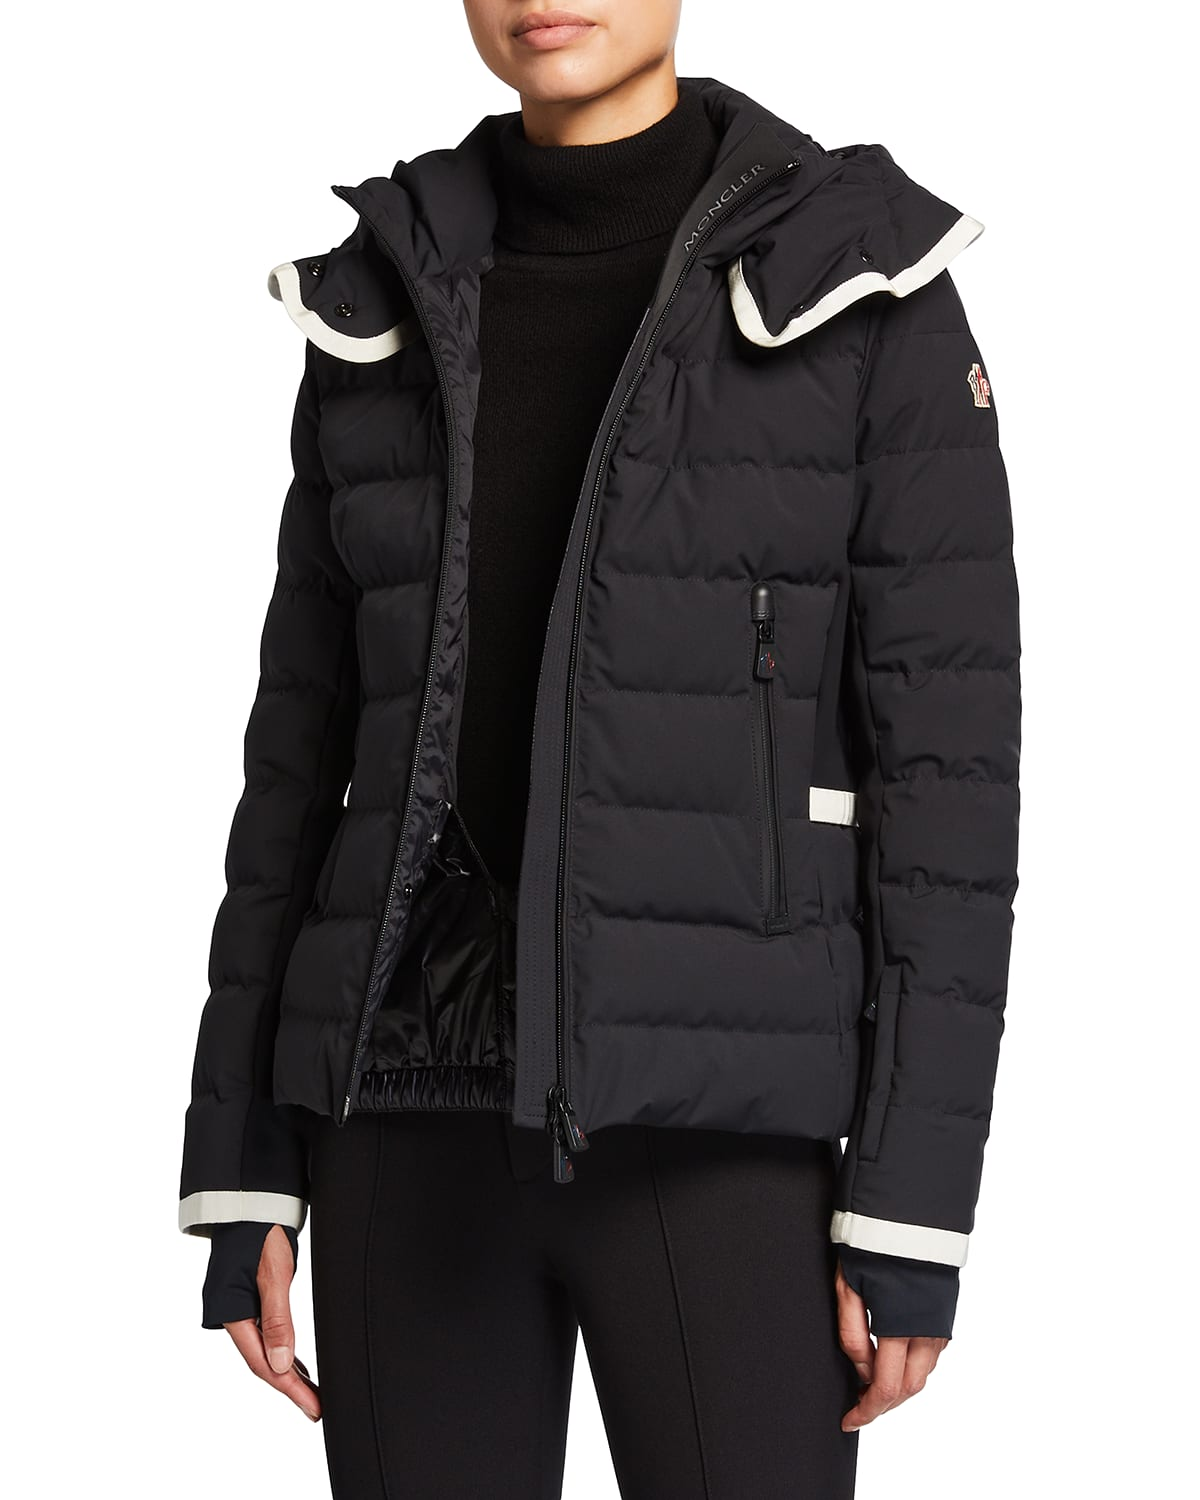 Lamoura Fitted Down Ski Jacket